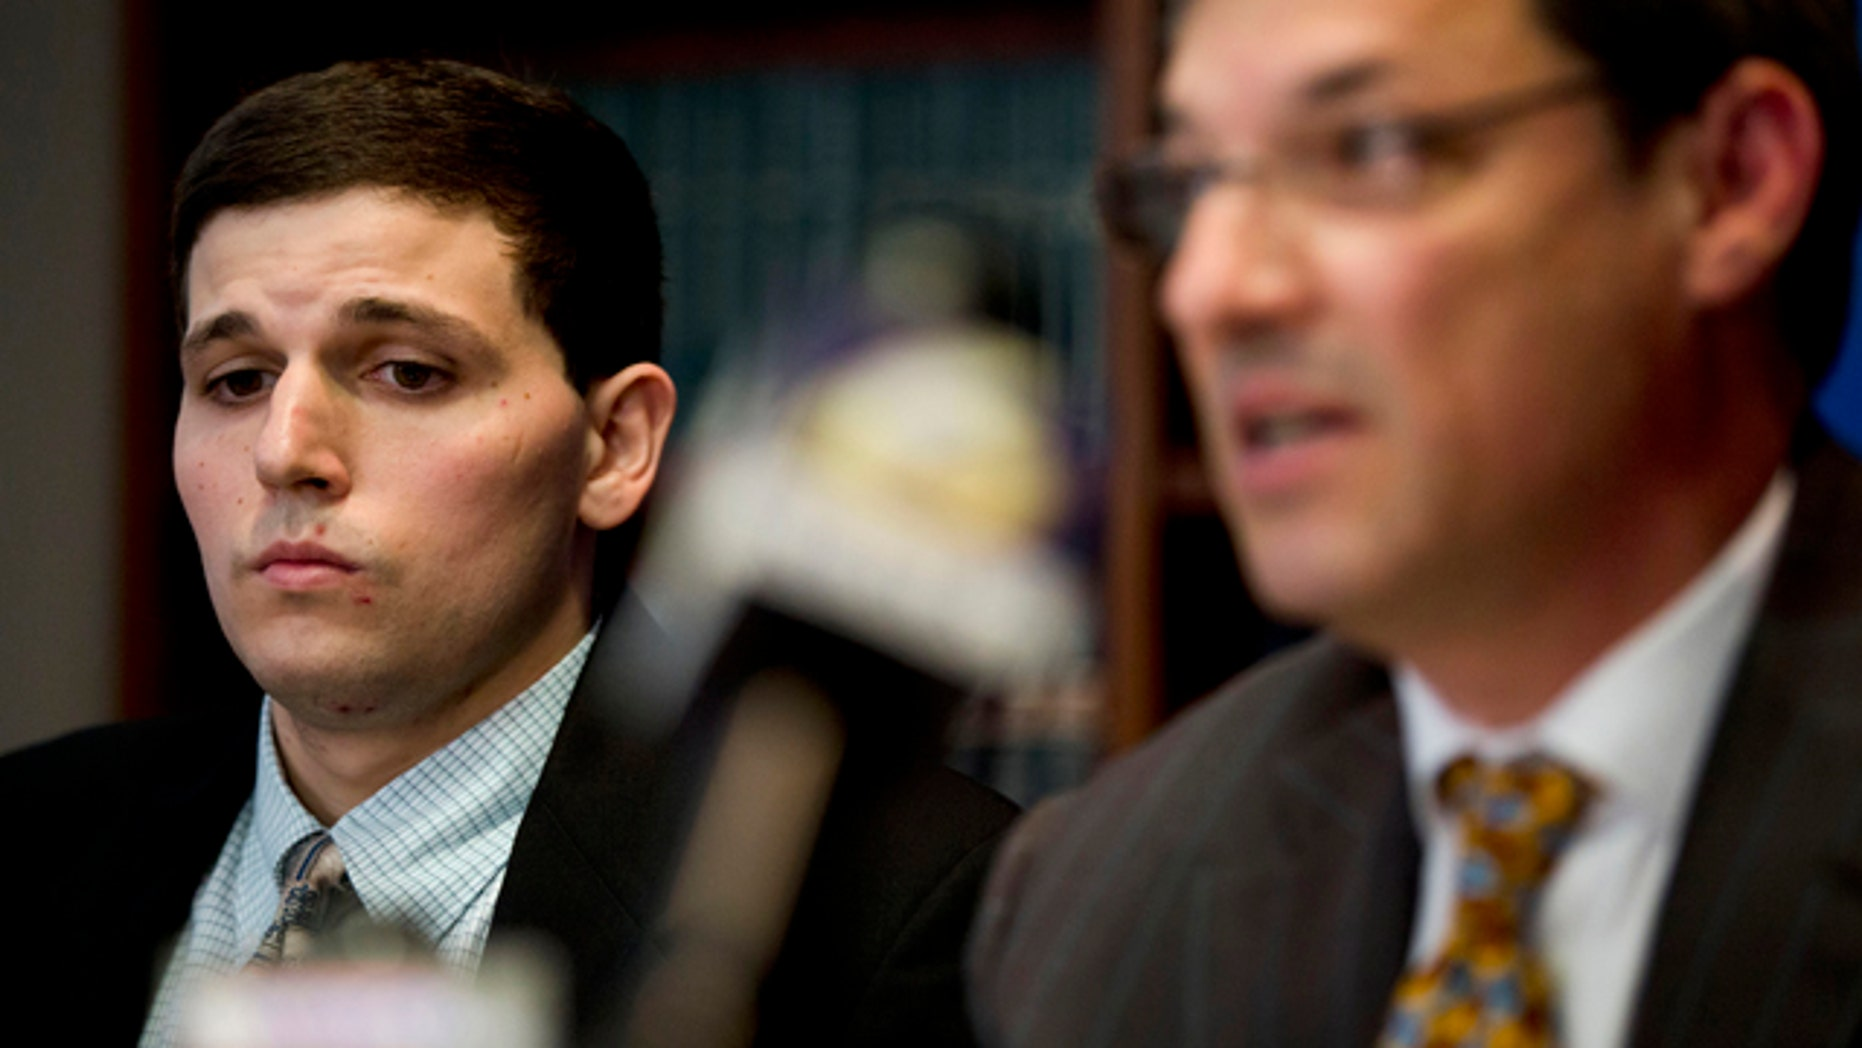 June 8, 2015: James Vivenzio, left, listens to his attorney Aaron J. Frewiald during a news conference in Philadelphia. Vivenzio, a former student who blew the whistle on a Penn State fraternity's secret Facebook page featuring photos of naked women says the university ignored his complaints about sexual assault, hazing and drug use. (AP Photo/Matt Rourke)